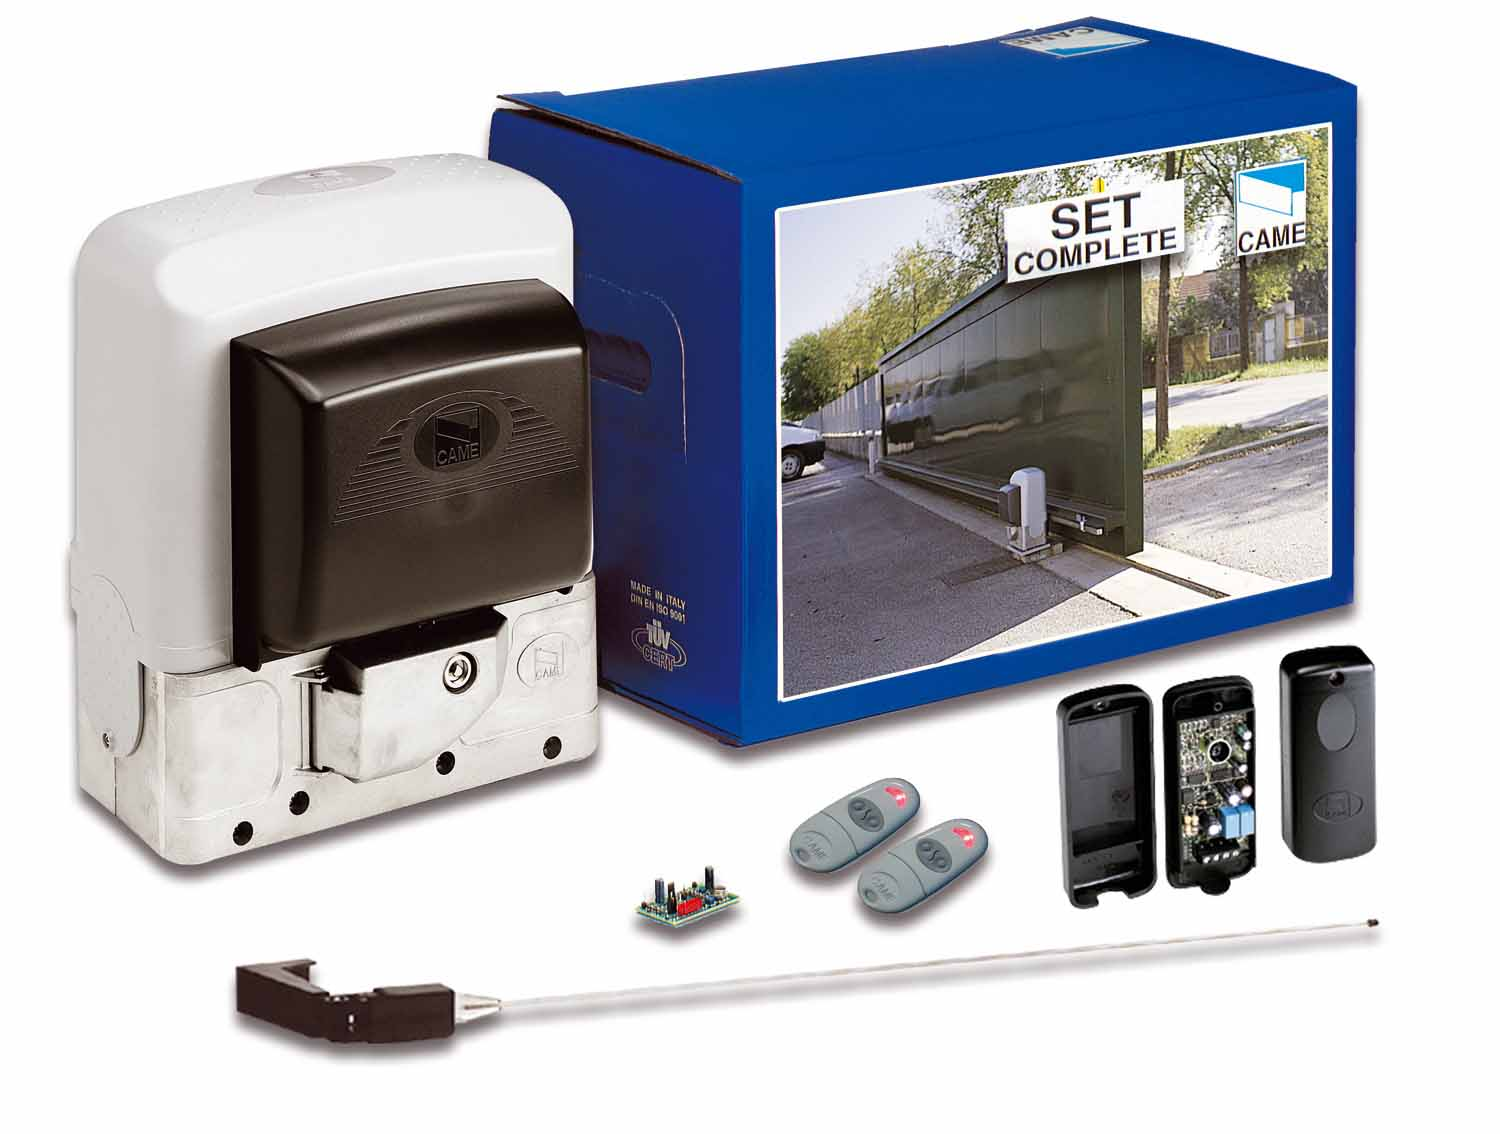 Came Bk800 Automatic Sliding Gate Kit Autogate Supplies